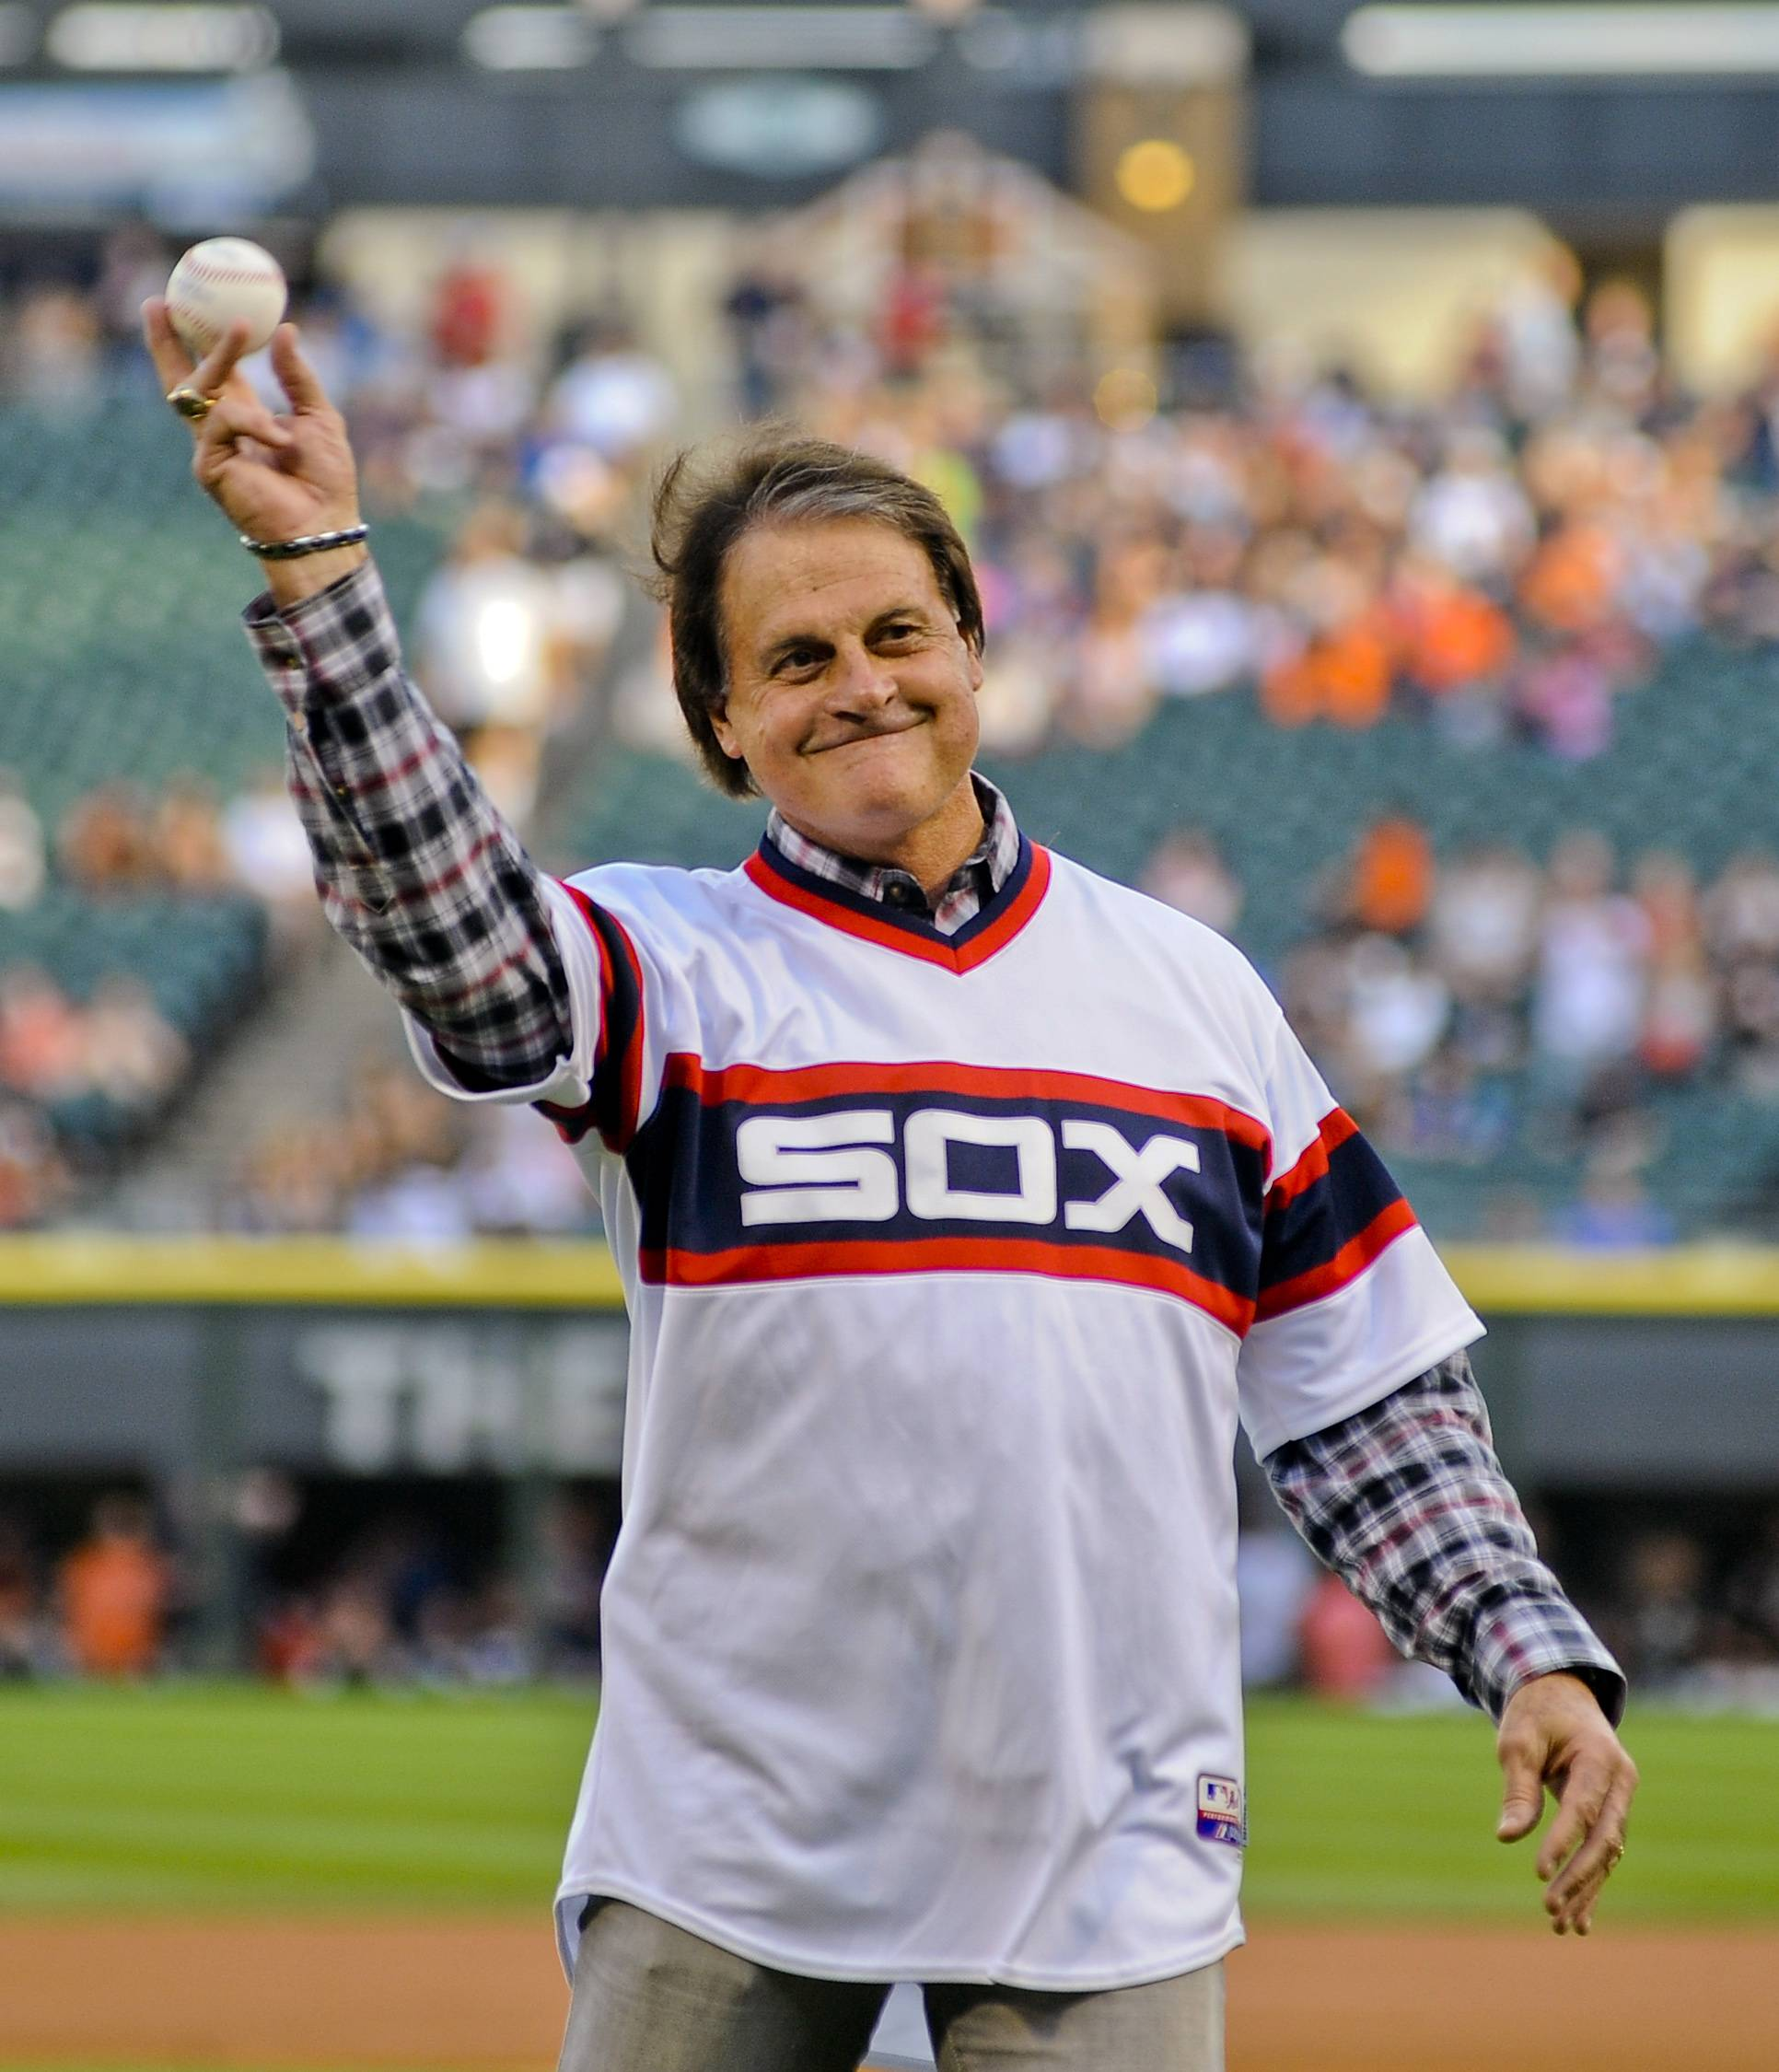 Former Chicago White Sox manager Tony La Russa throws out a ceremonial first pitch before the second game of the White Sox's baseball doubleheader against the Detroit Tigers in Chicago on Saturday, Aug. 30, 2014.